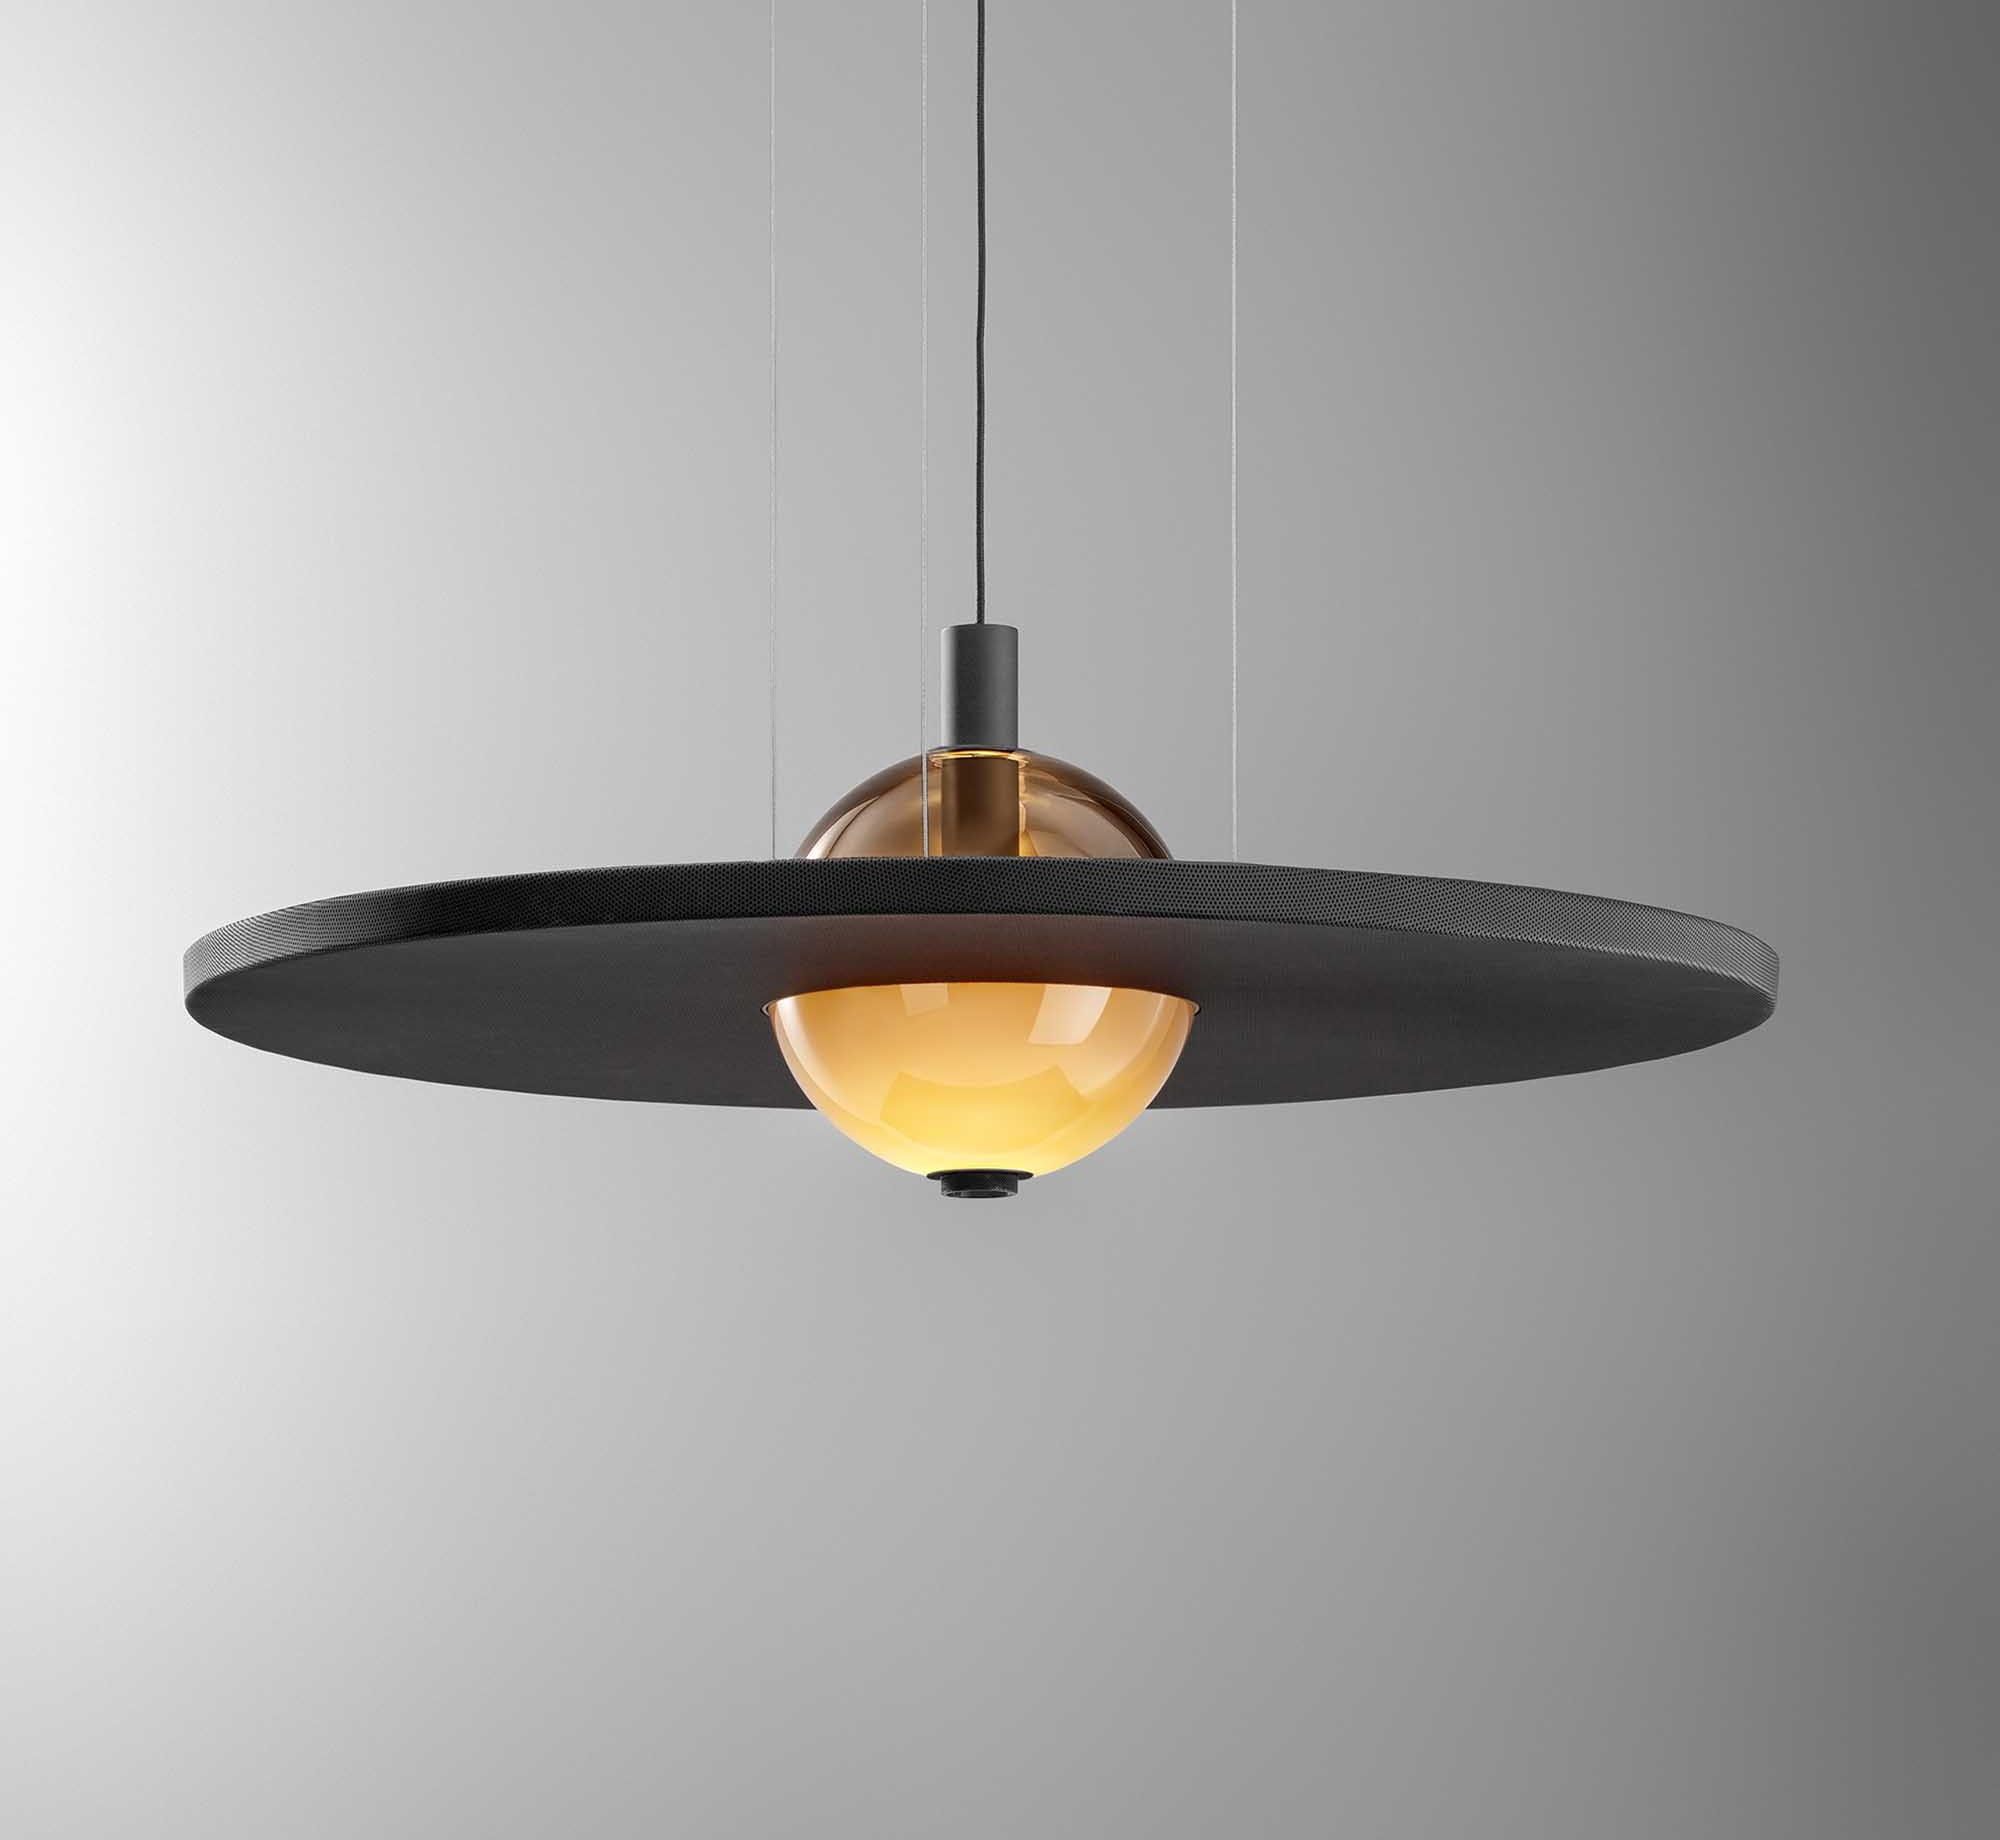 ECLIPSE_NUANCE_SILENCE (1)_OLEV_cover_lamp_suspension_sospensione_LED_fonoassorbente